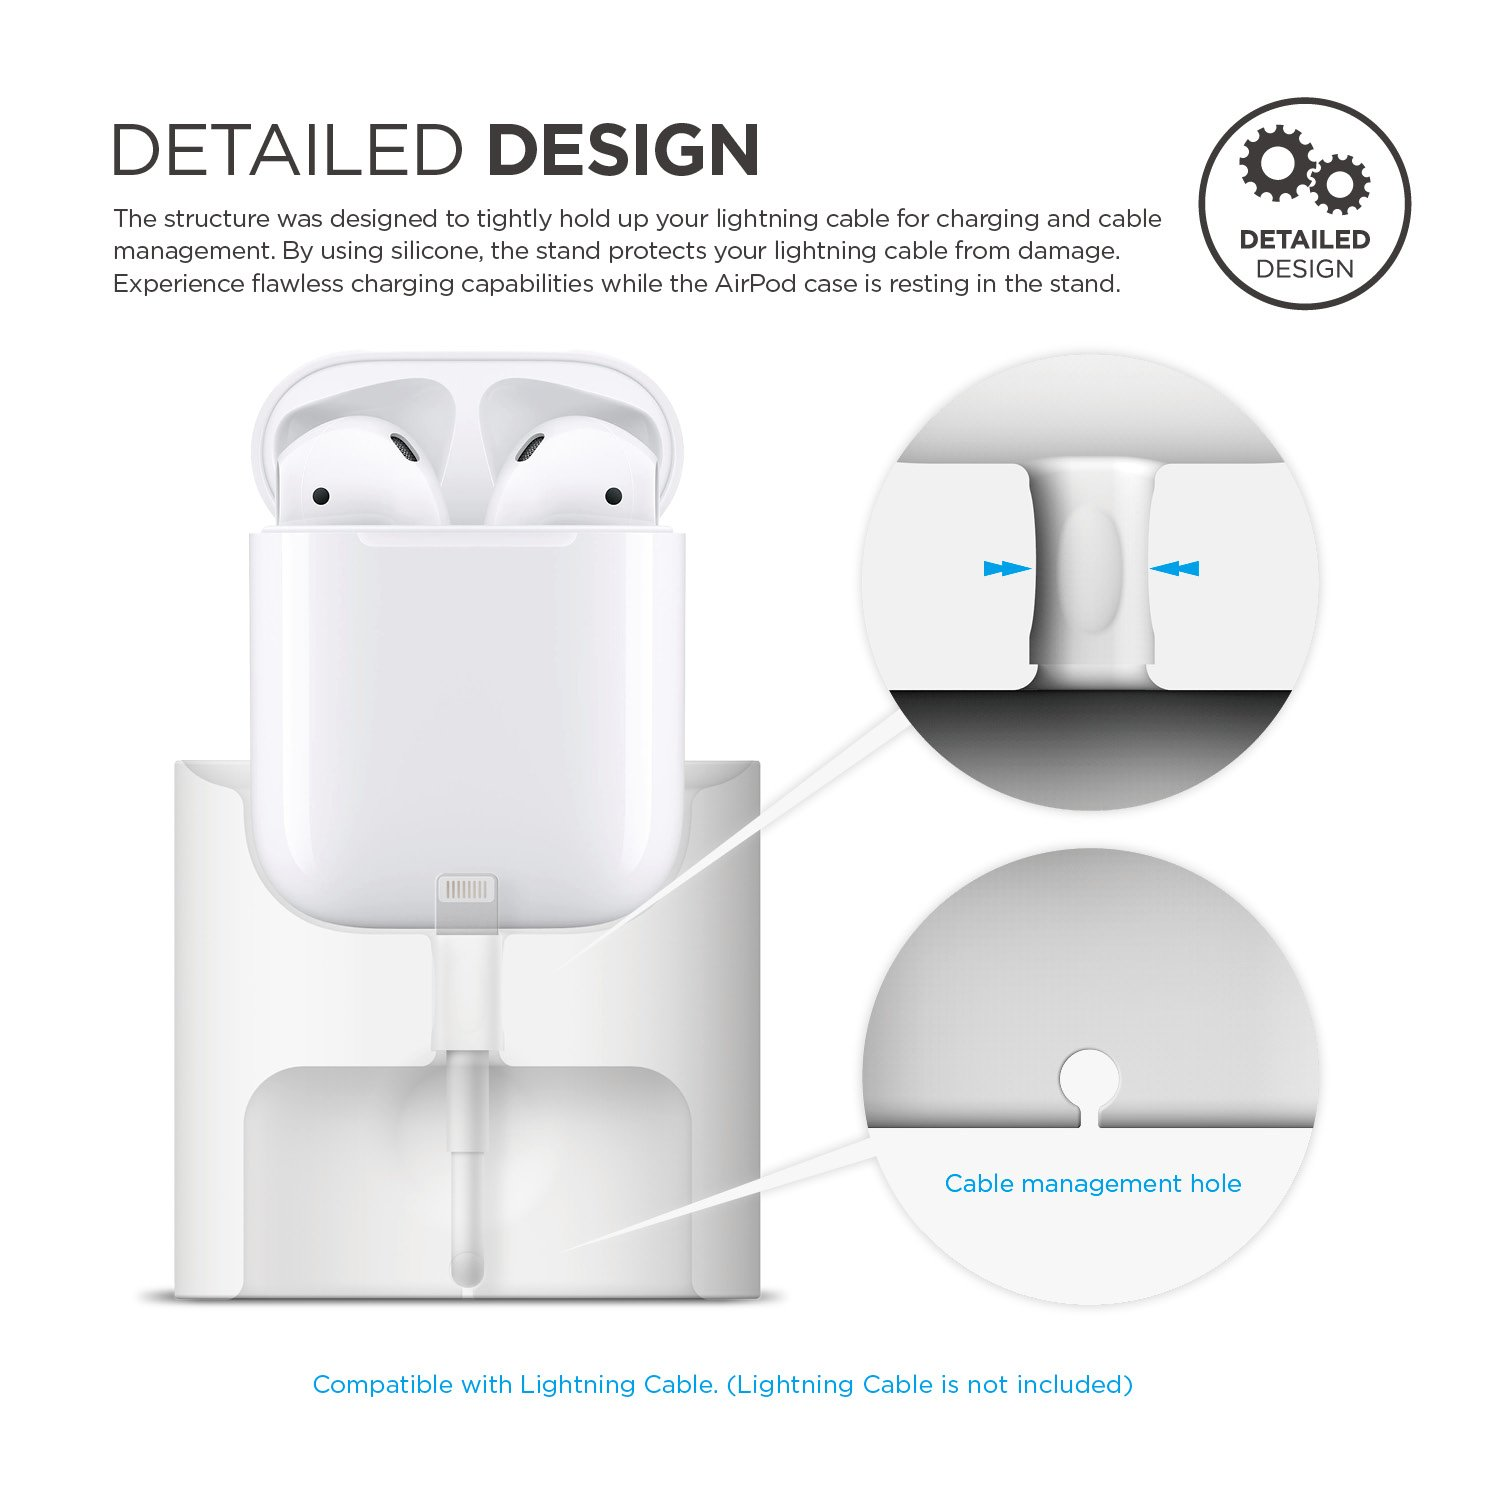 Airpod Charger Wire Center Led Rocker Switch Wiring Diagram Http Wwwturretboardscom Guitar Amazon Com Elago Airpods Stand White Charging Station Long Rh Wireless Case